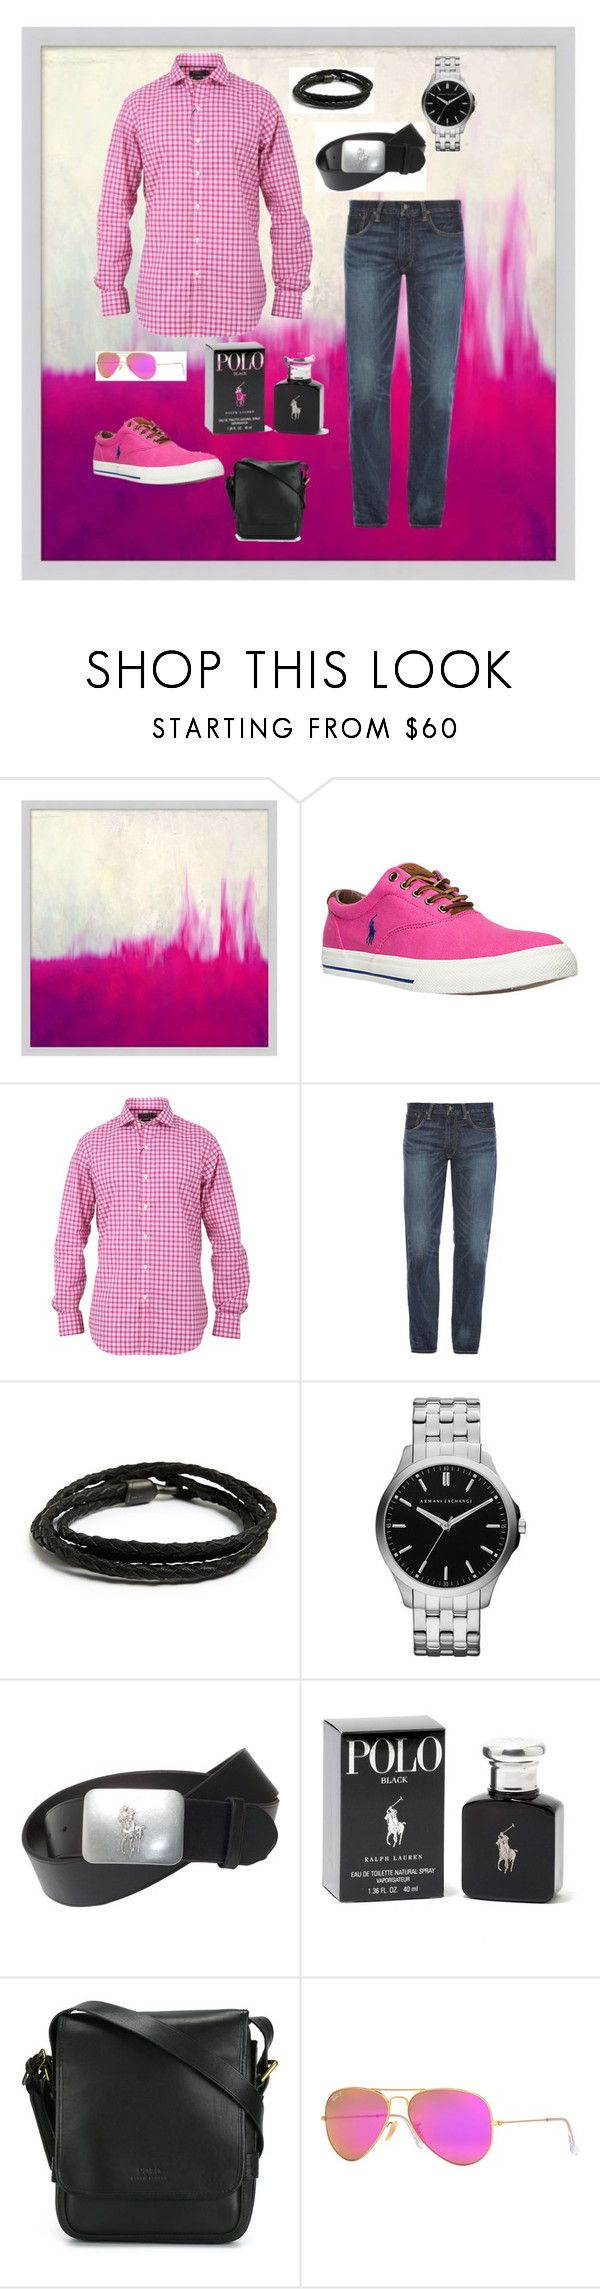 """""""Pink Polo!"""" by whatsyourswagg ❤ liked on Polyvore featuring Pottery Barn, Polo Ralph Lauren, Ralph Lauren, MIANSAI, Armani Exchange, Ray-Ban, men's fashion and menswear"""